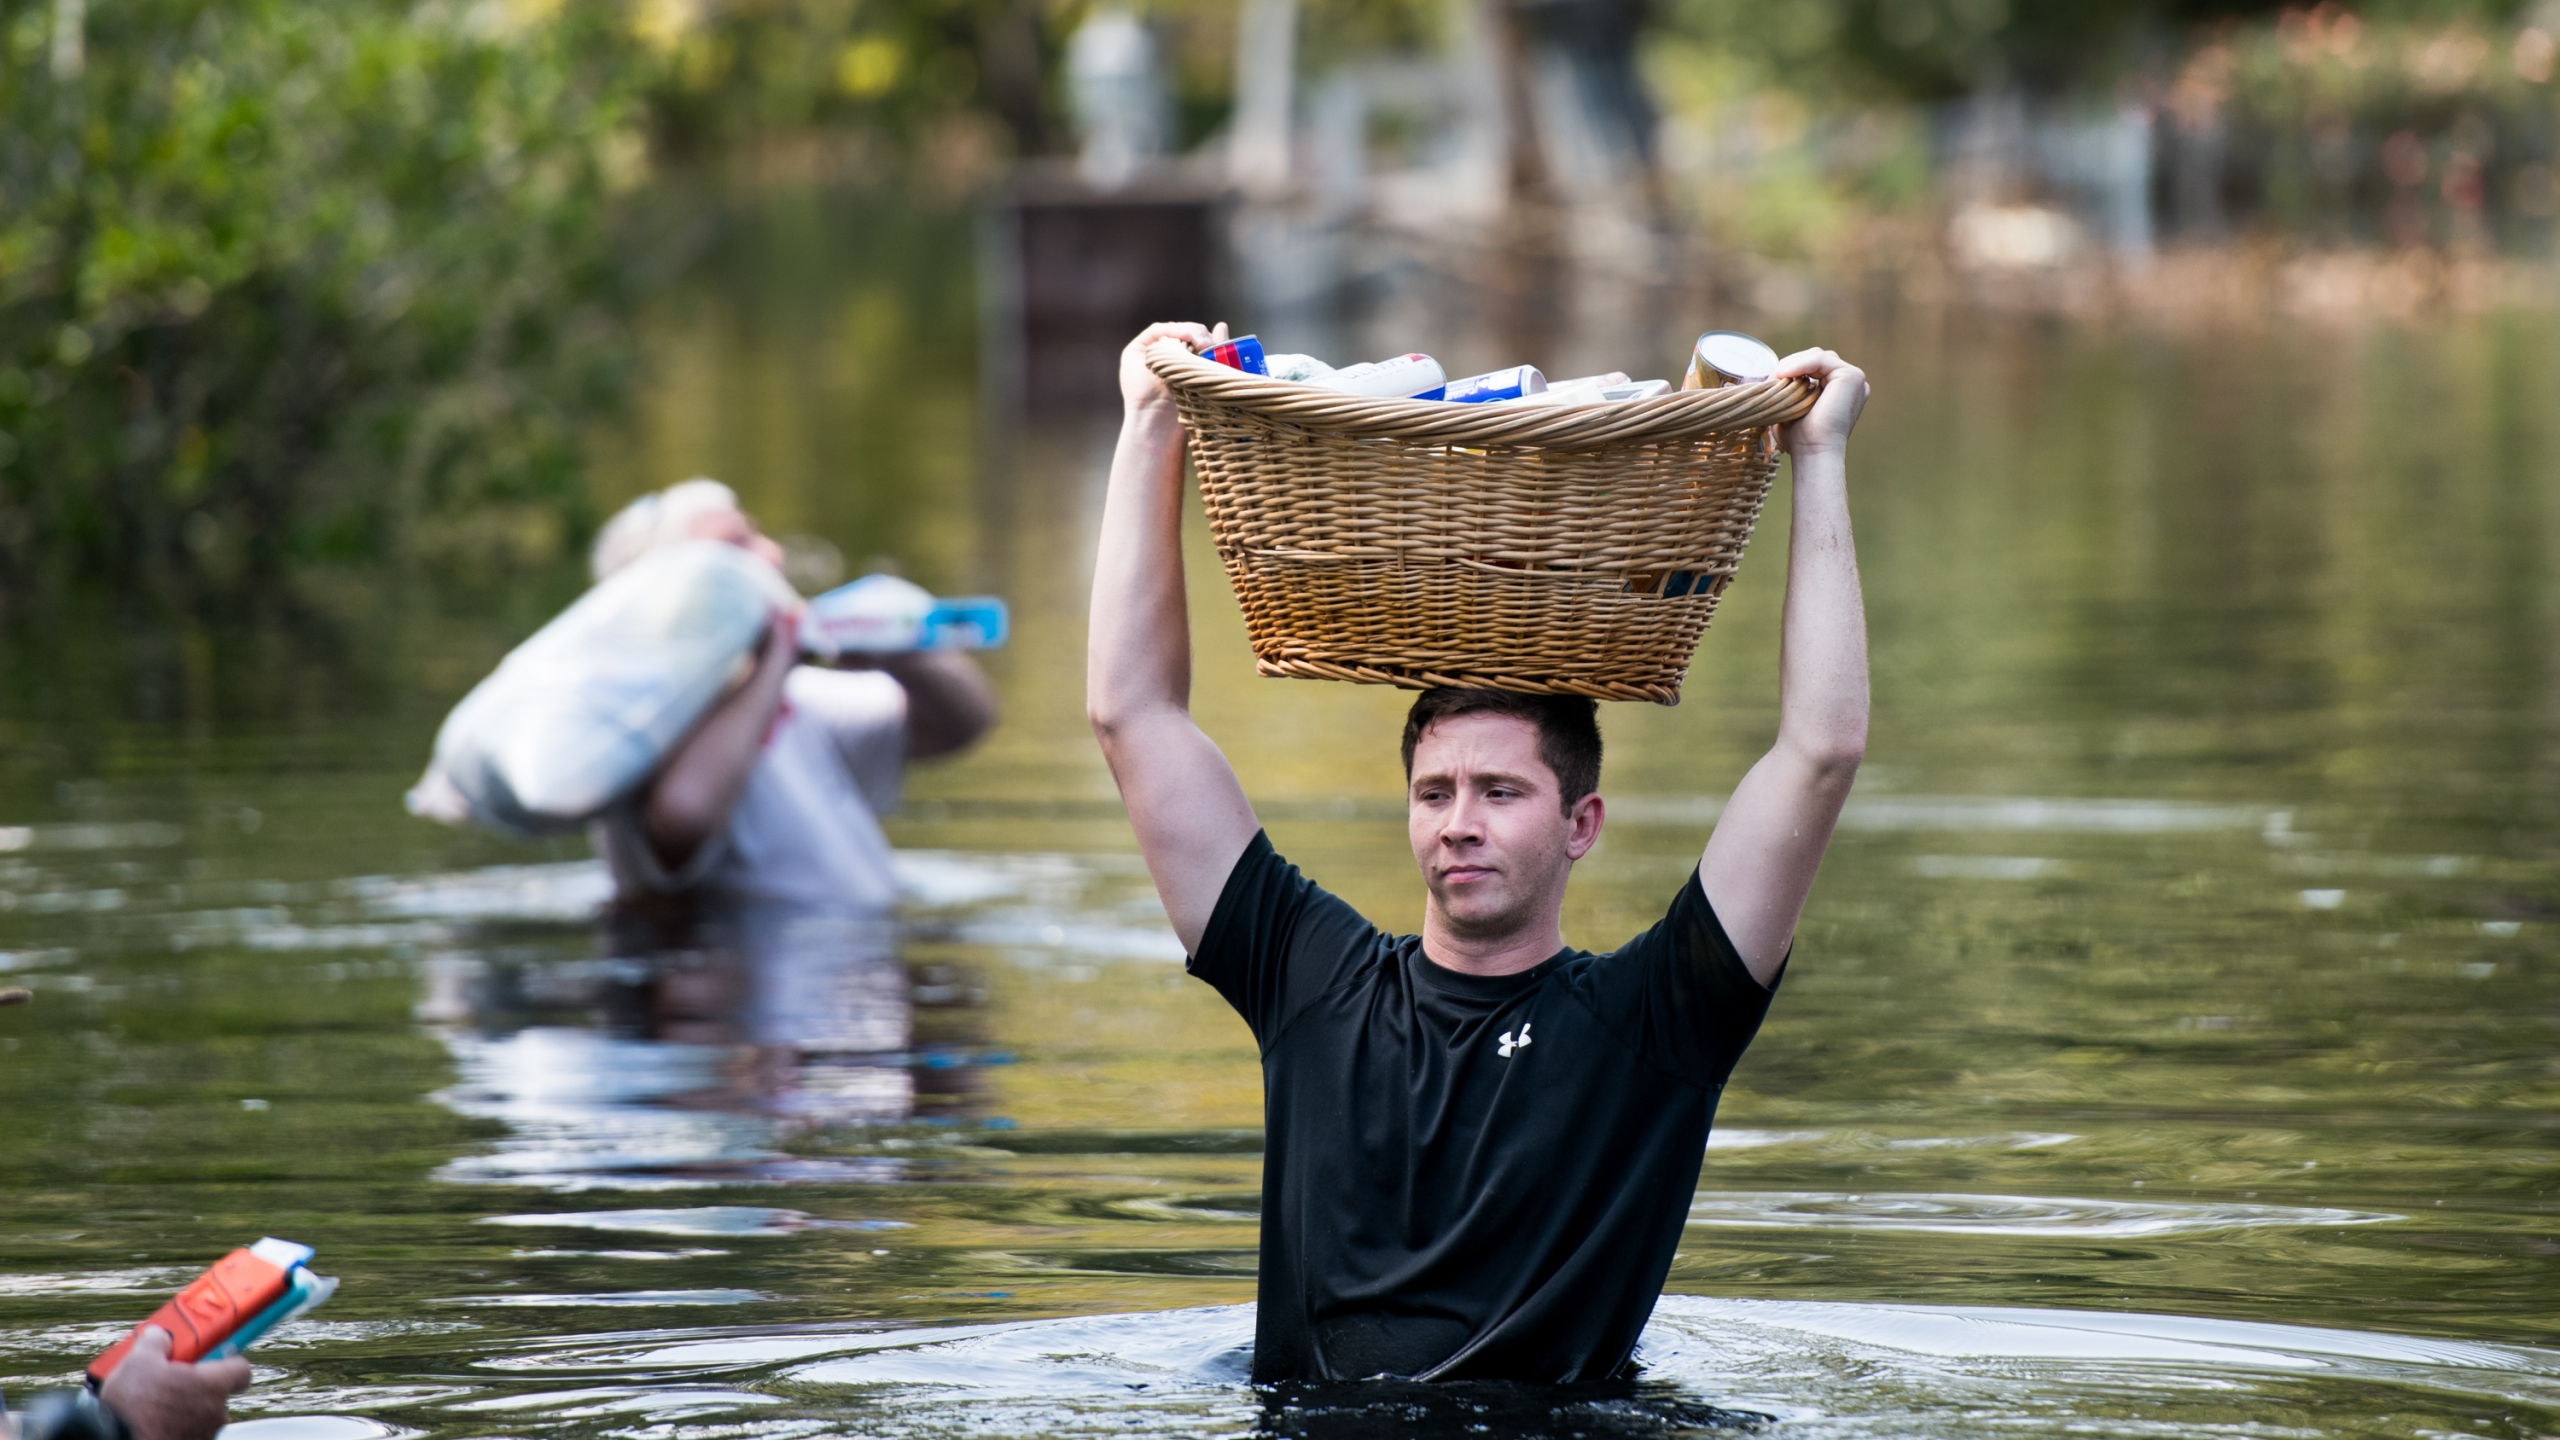 Codey Lamb walks through floodwaters caused by Hurricane Florence on Sept. 20, 2018 in Longs, South Carolina. (Credit: Sean Rayford/Getty Images)